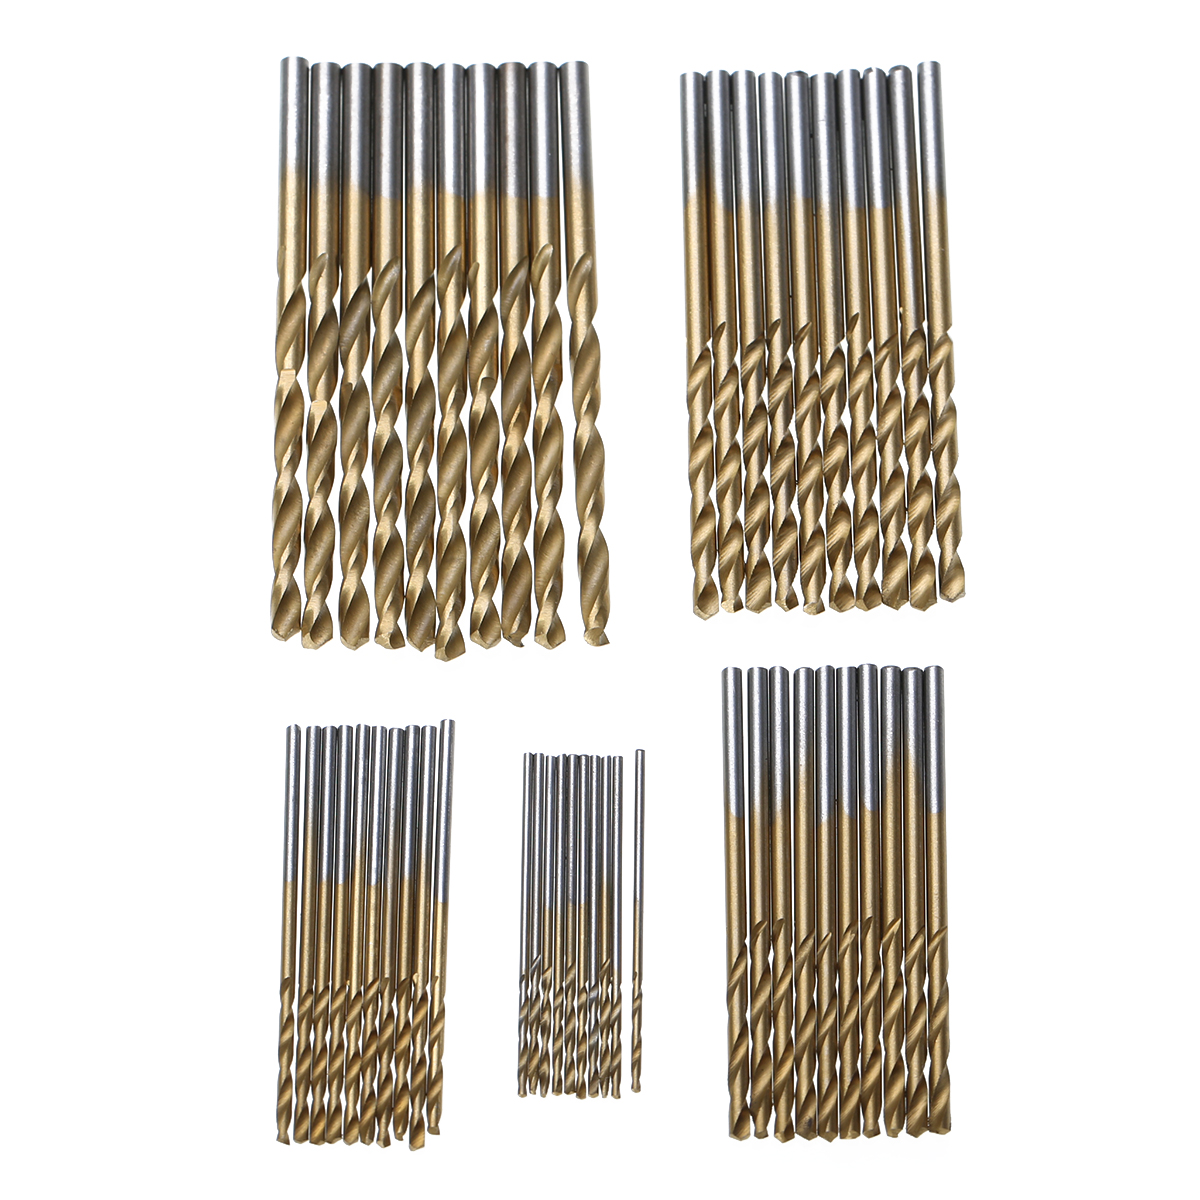 50pcs Titanium Coated HSS Drill Bit Set High Speed Steel Twist Woodworking Drilling Tools  1/1.5/2/2.5/3mm 13pcs set hss high speed steel twist drill bit for metal titanium coated drill 1 4 hex shank 1 5 6 5mm power tools accessories